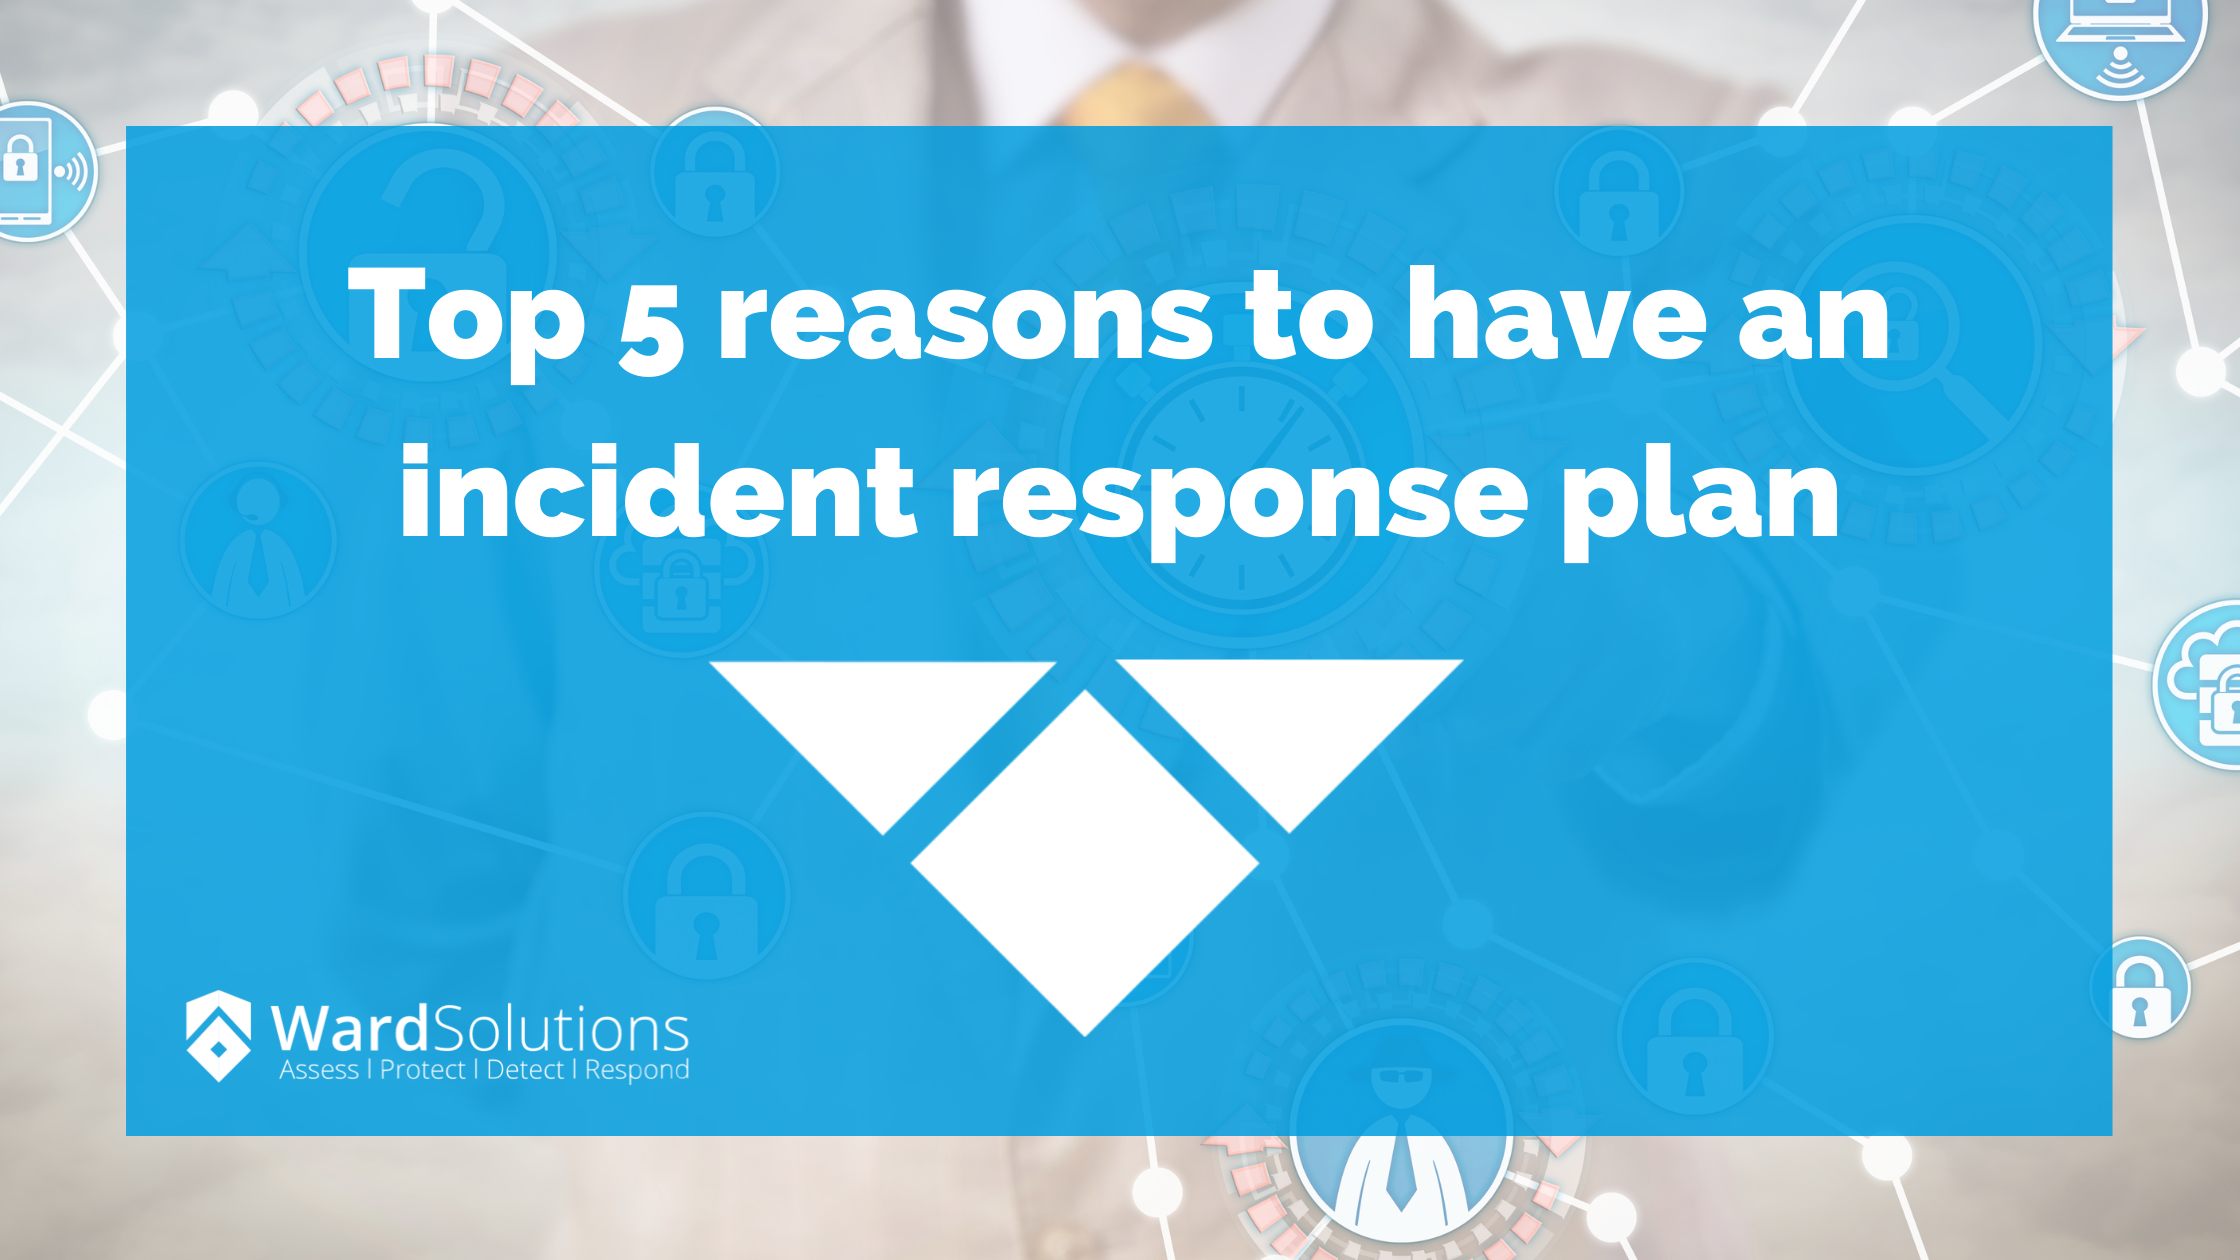 Top 5 reasons to have an incident response plan